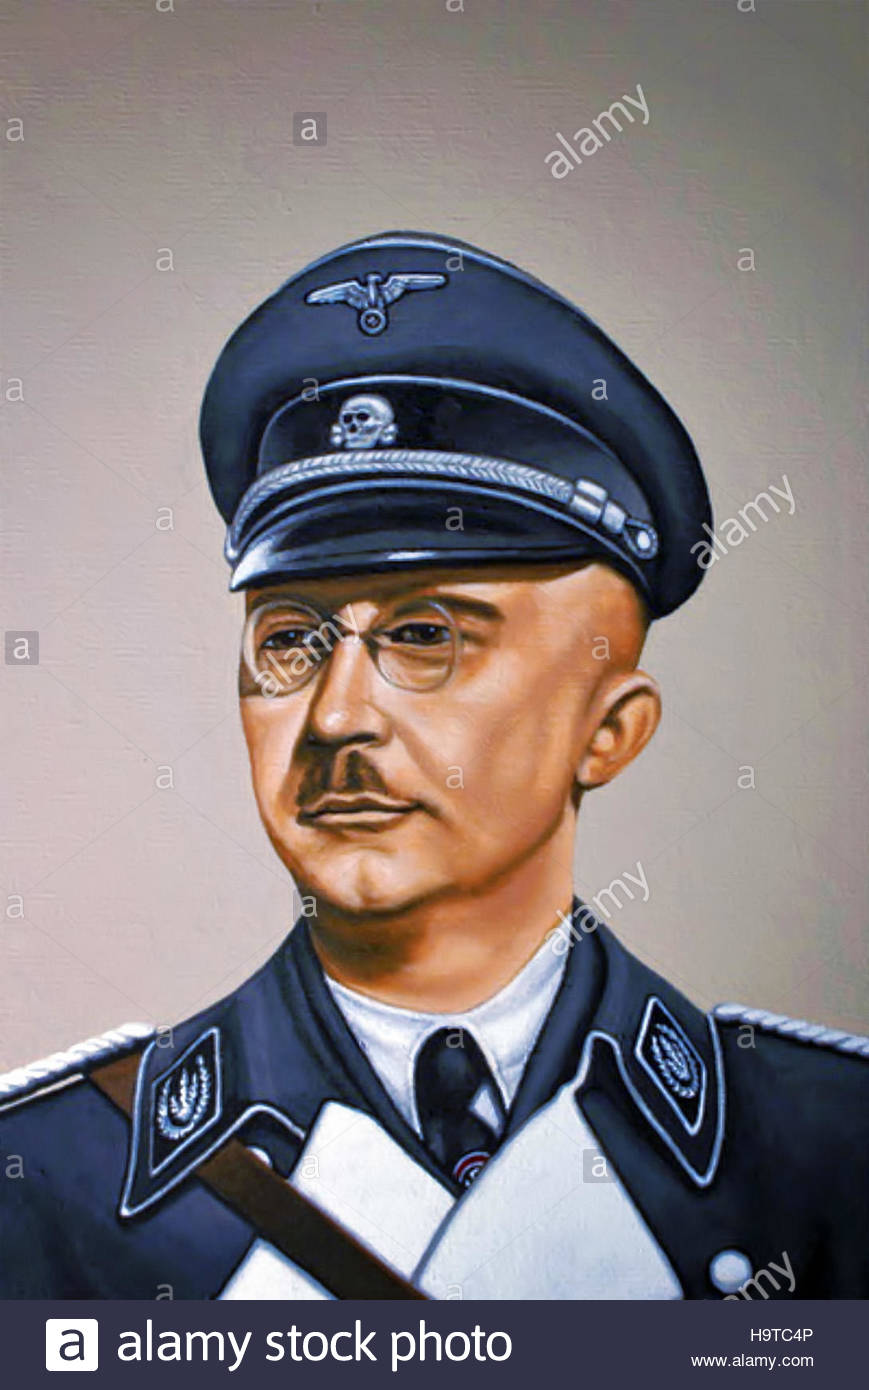 Heinrich Himmler was Reichsführer of the Schutzstaffel (Protection Squadron; SS), and a leading member of the - Stock Image